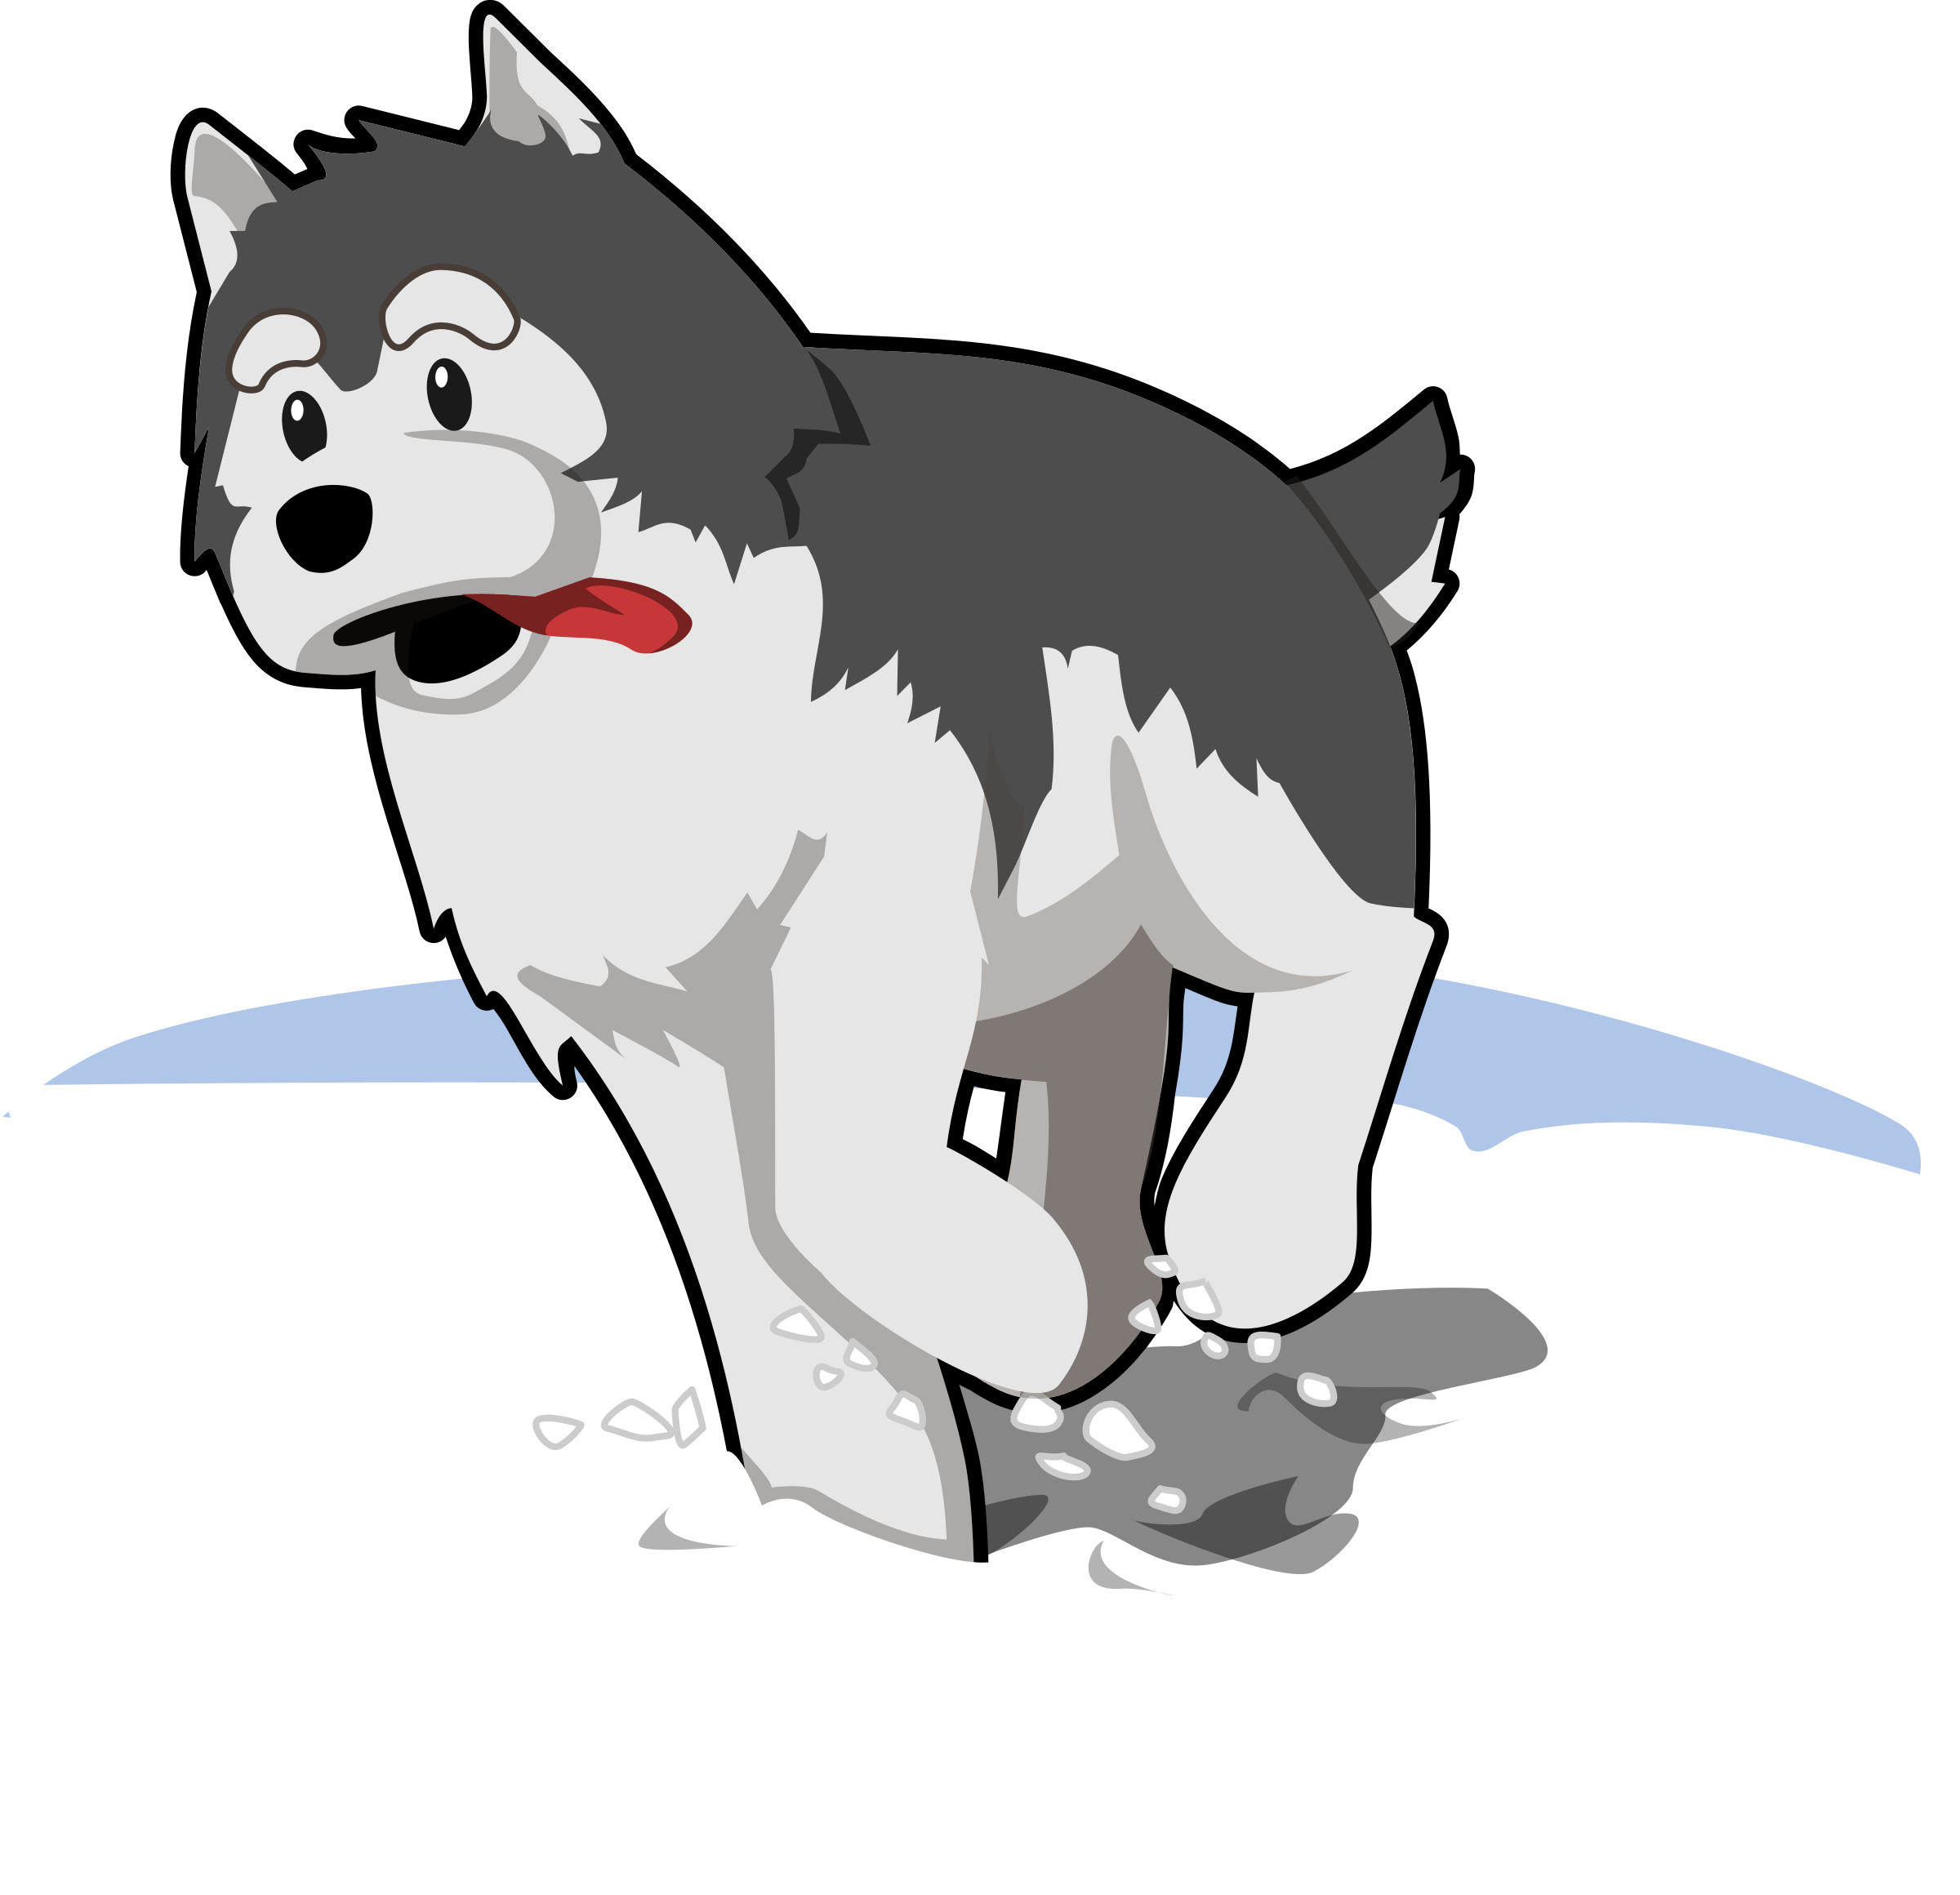 Husky svg face outline. Clipart running in snow